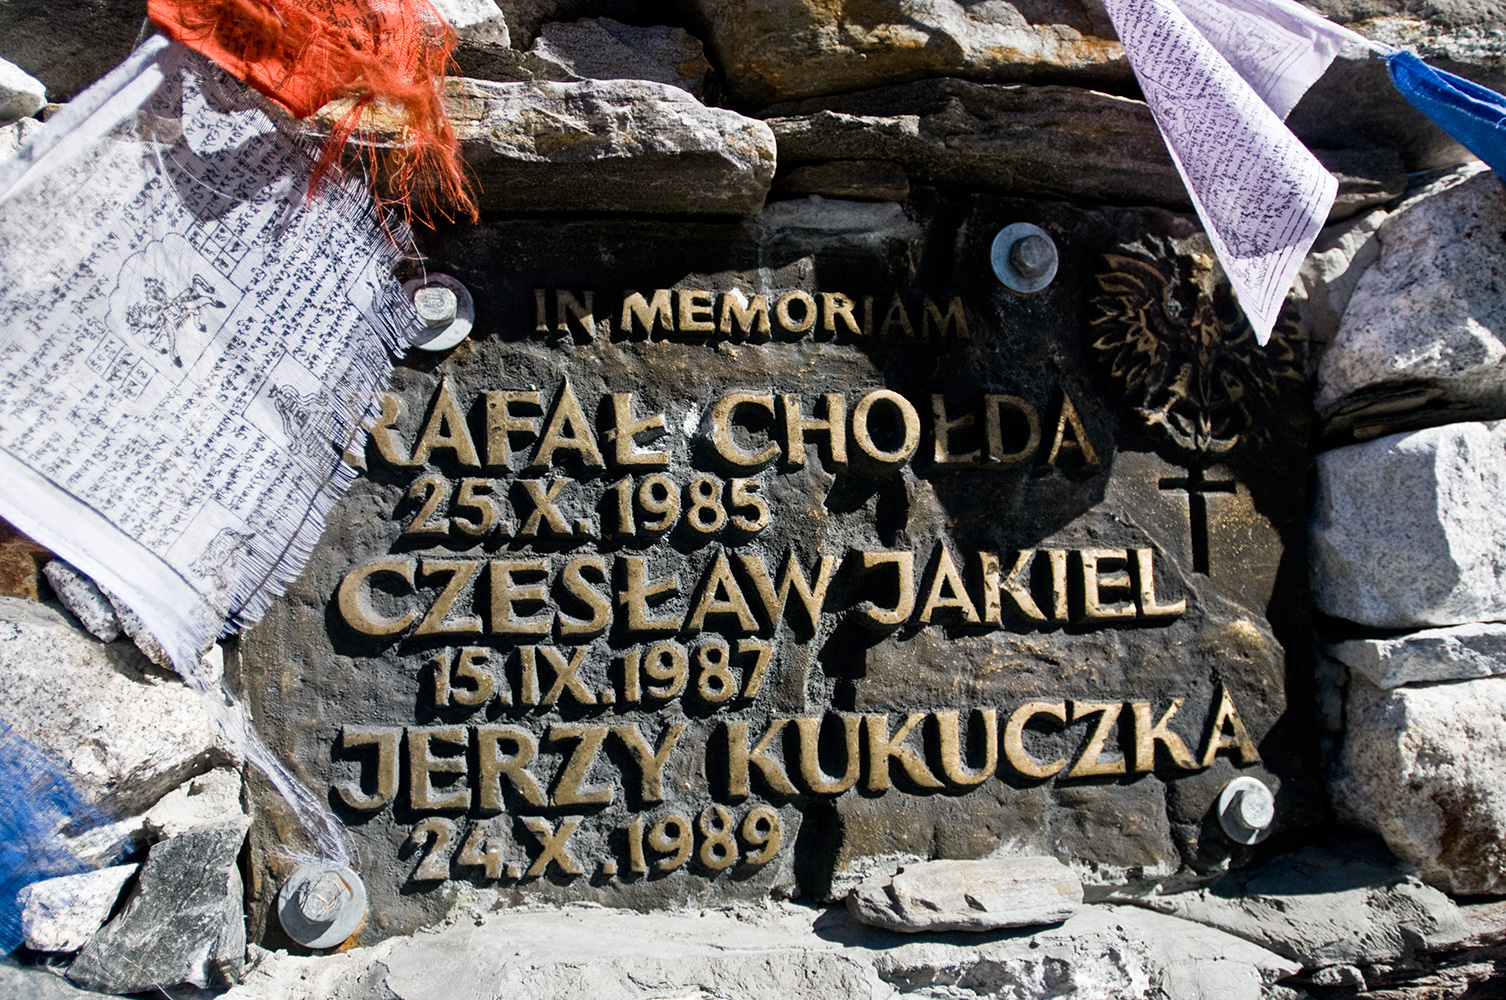 Above Chhukung village, beneath the immense, brooding mass of the south wall of Lhotse, is this memorial to three Polish climbers who perished in separate accidents on the mountain. Rafal Cholda,  Czeslaw Jakiel and Jerzy Kukuczka. Kukuczka was the second person to summit all 14 of the world's 8000m peaks, after Reinhold Messner. He also climber four 8000m peaks in winter and made the first ascent, in Alpine Style, of a new route on K2 (with Tadeusz Piotrowski) which has never been repeated. He was a hard man! Respect. RIP.Nikon D300, 17-35mm. November 2008